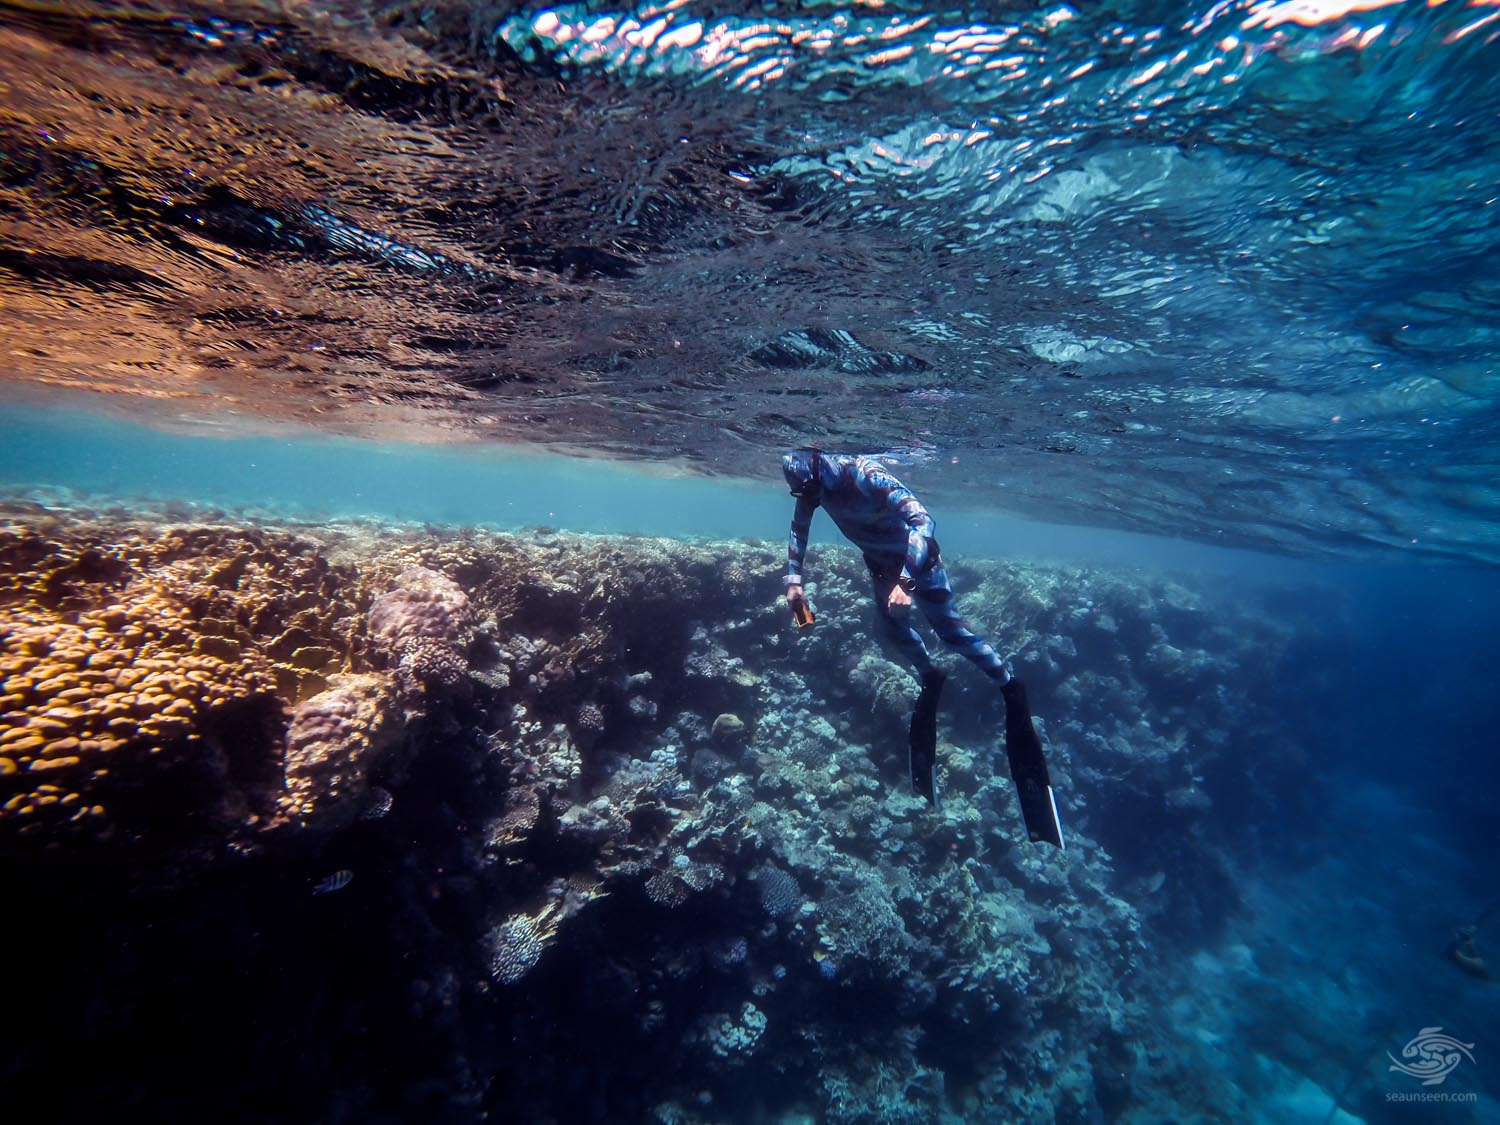 sharm freediving At the Drop off